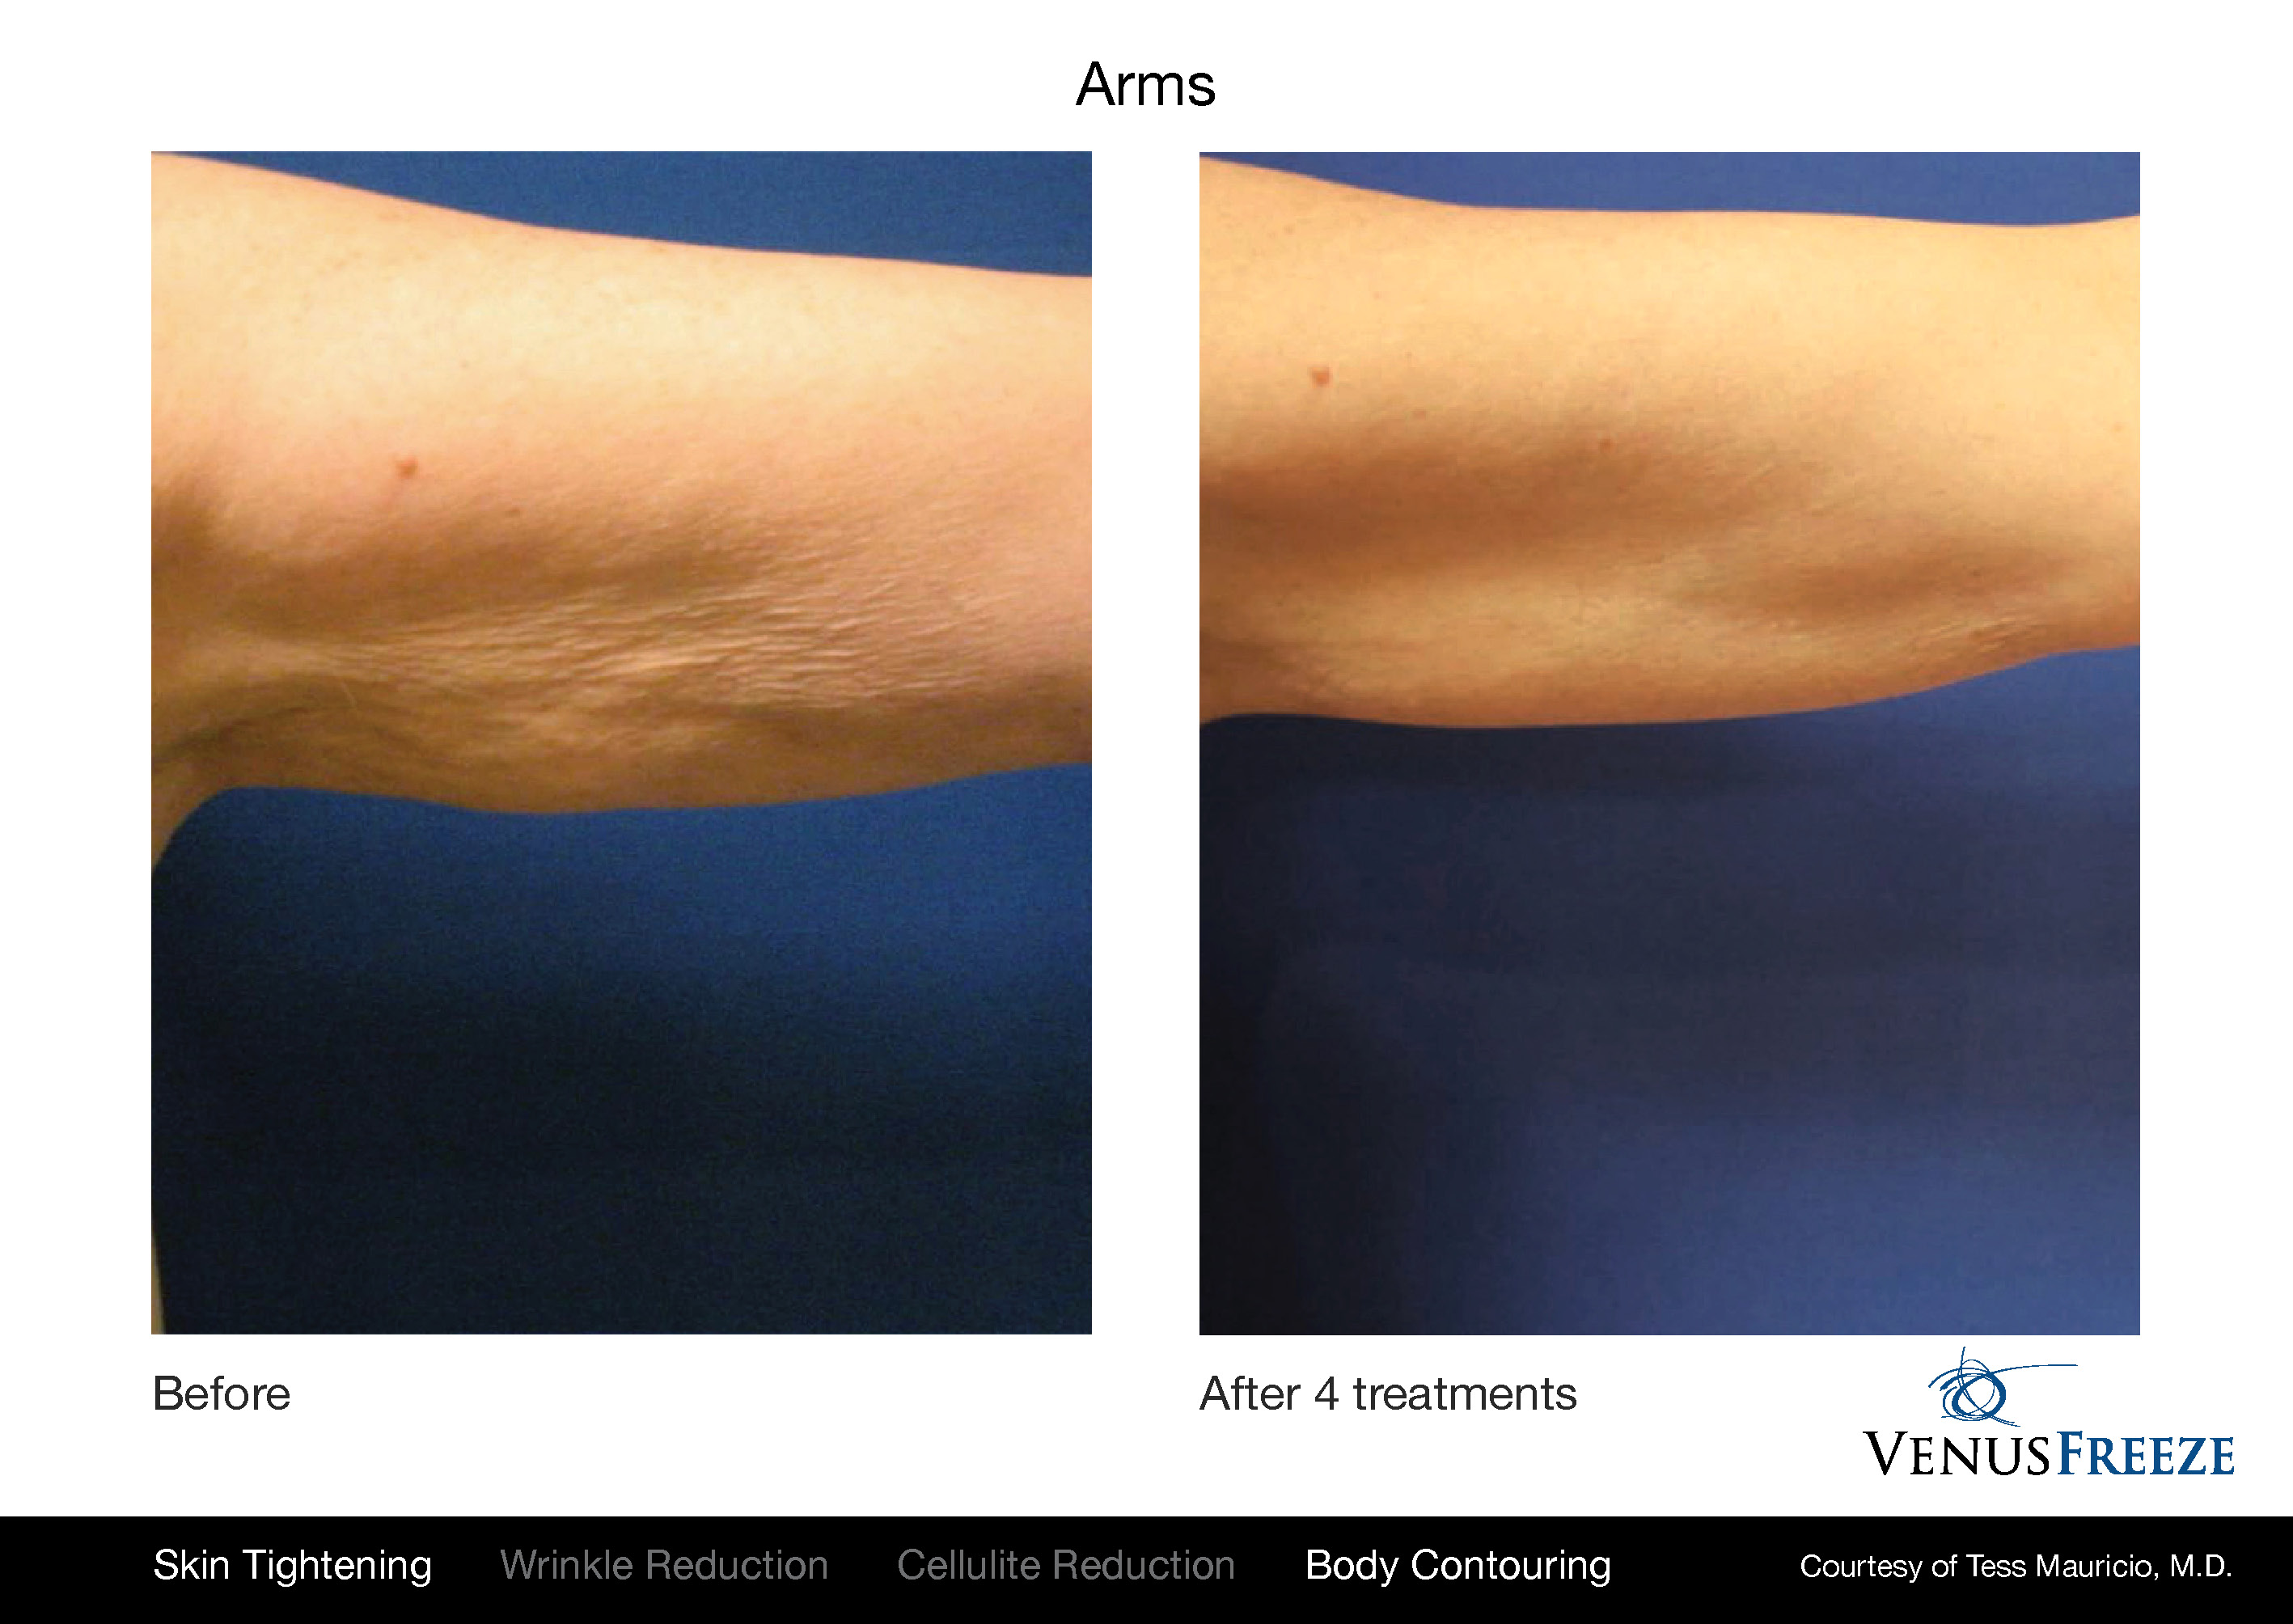 Body Contouring Austin | Venus Freeze Arm Before & After | Batwings | Skin Tightening